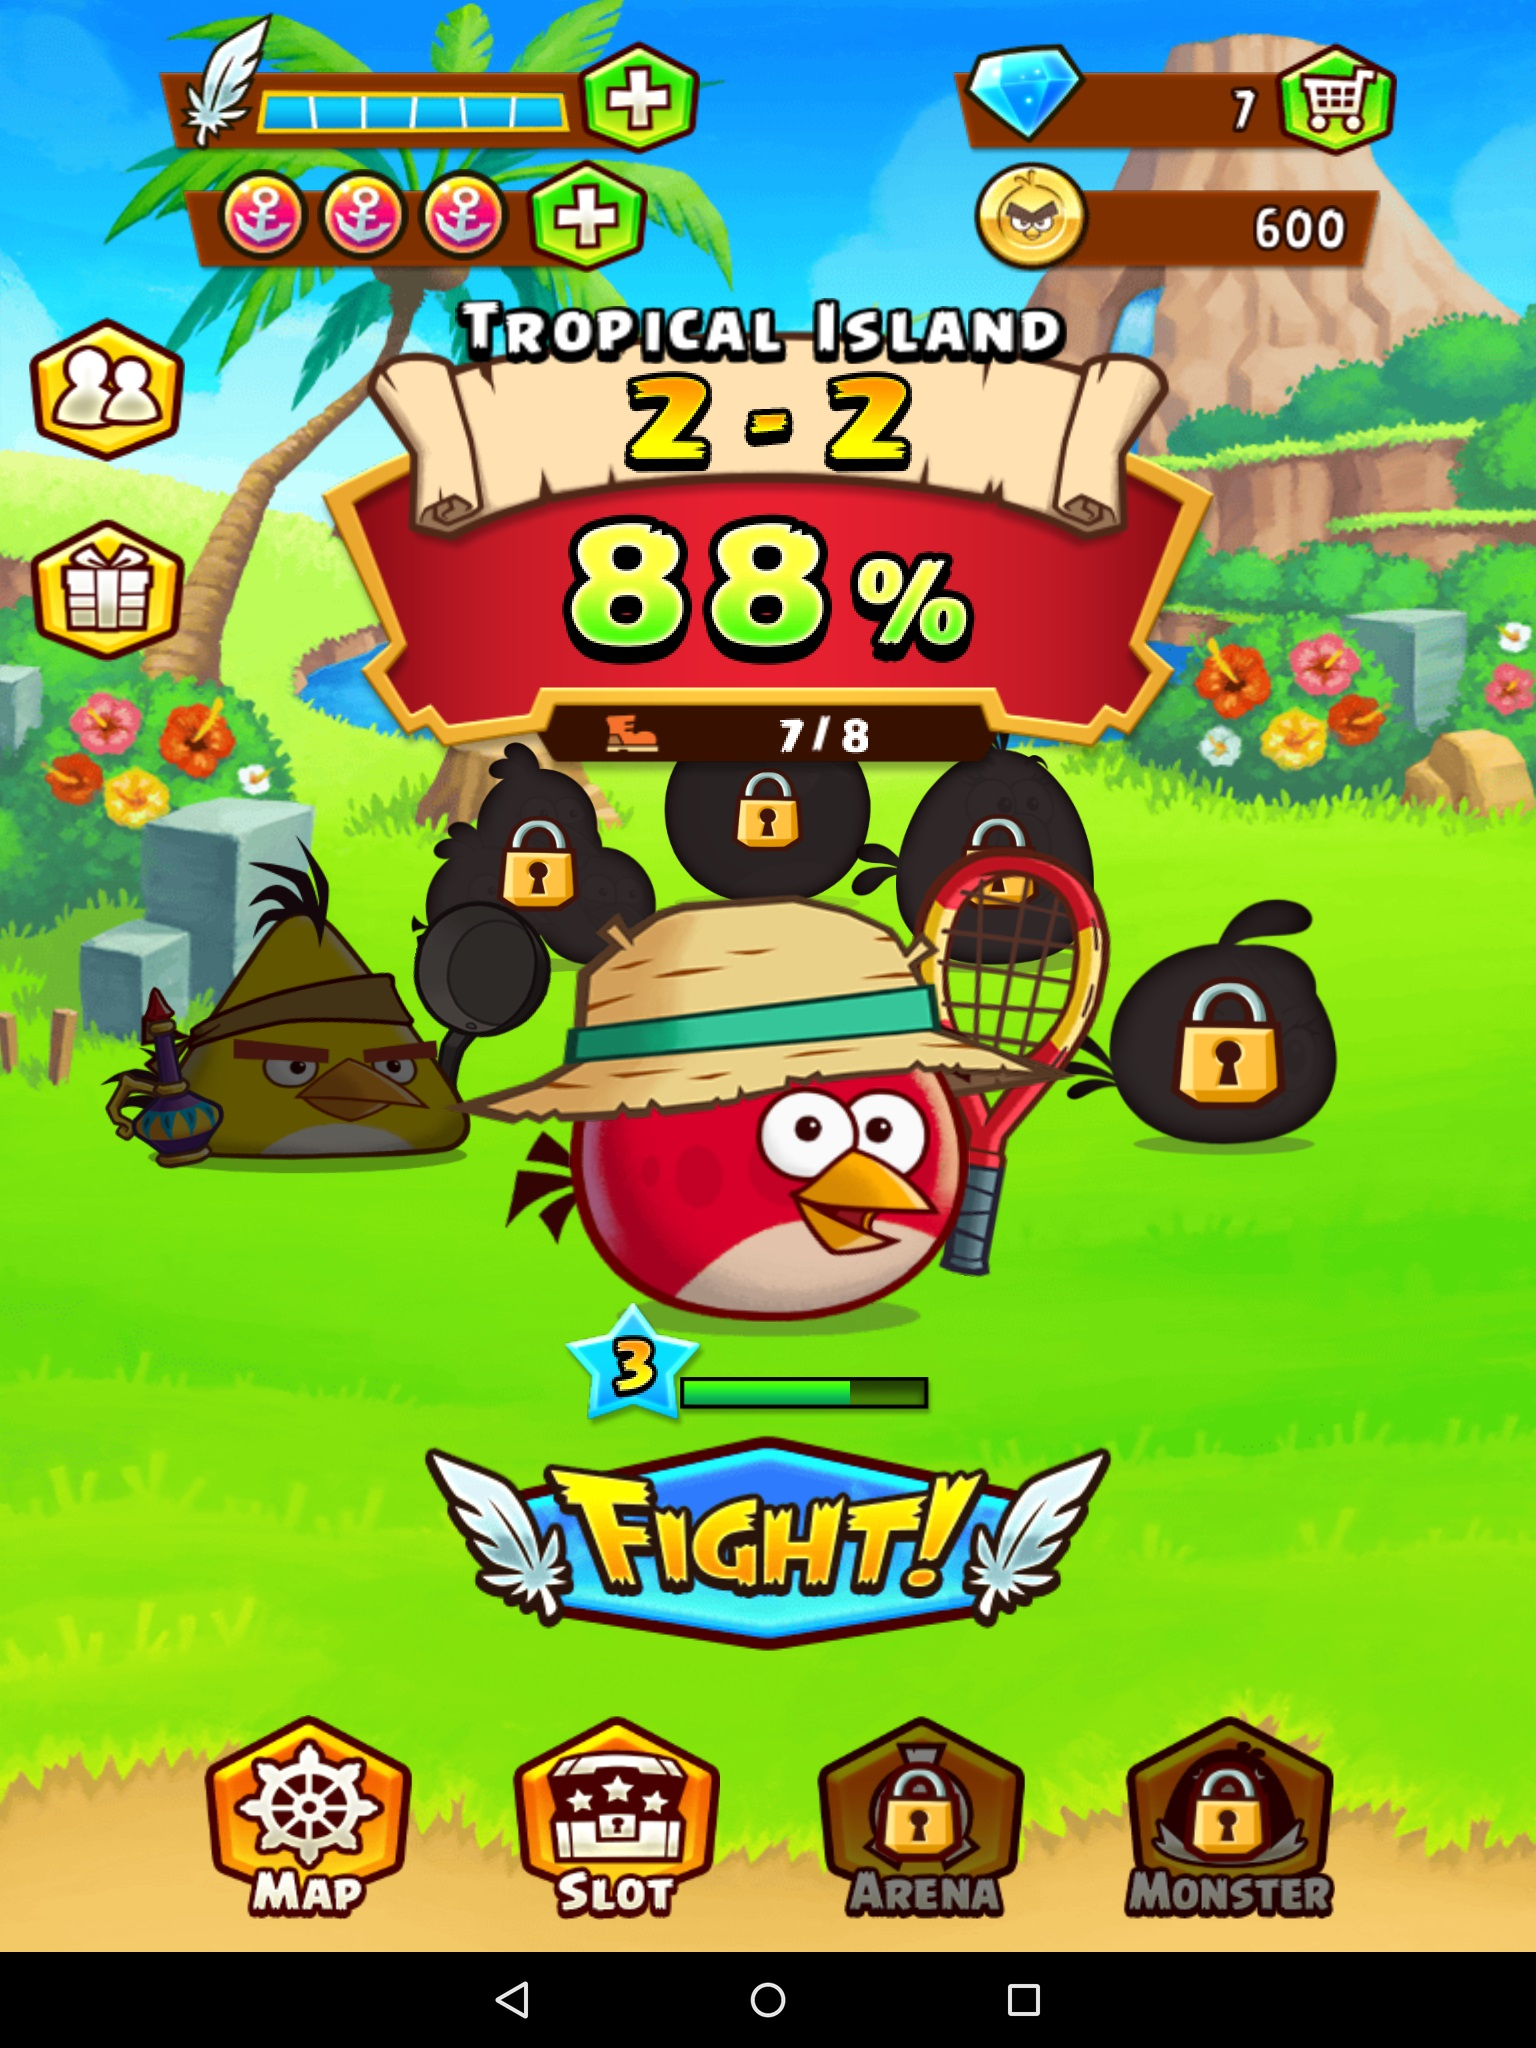 Angry Birds Fight! - A bit of a mismatch